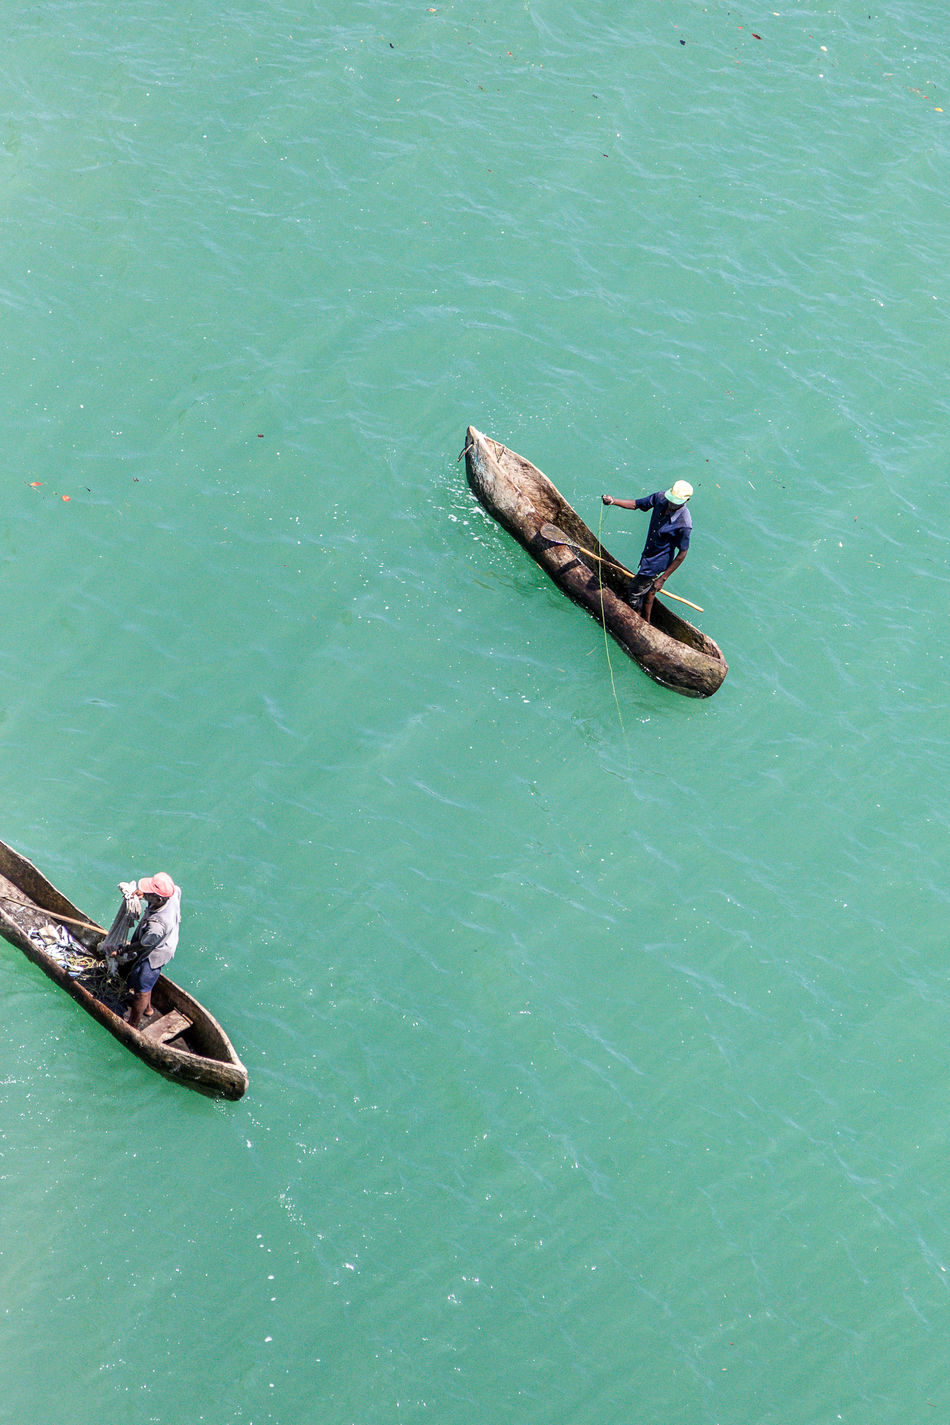 Blue Boat Catch Of Fish Day Fisherman High Angle View Lake Men Mode Of Transport Nature Nautical Vessel Occupation Outdoors Rowing Swimming Togetherness Tranquility Transportation Two Animals Water Waterfront